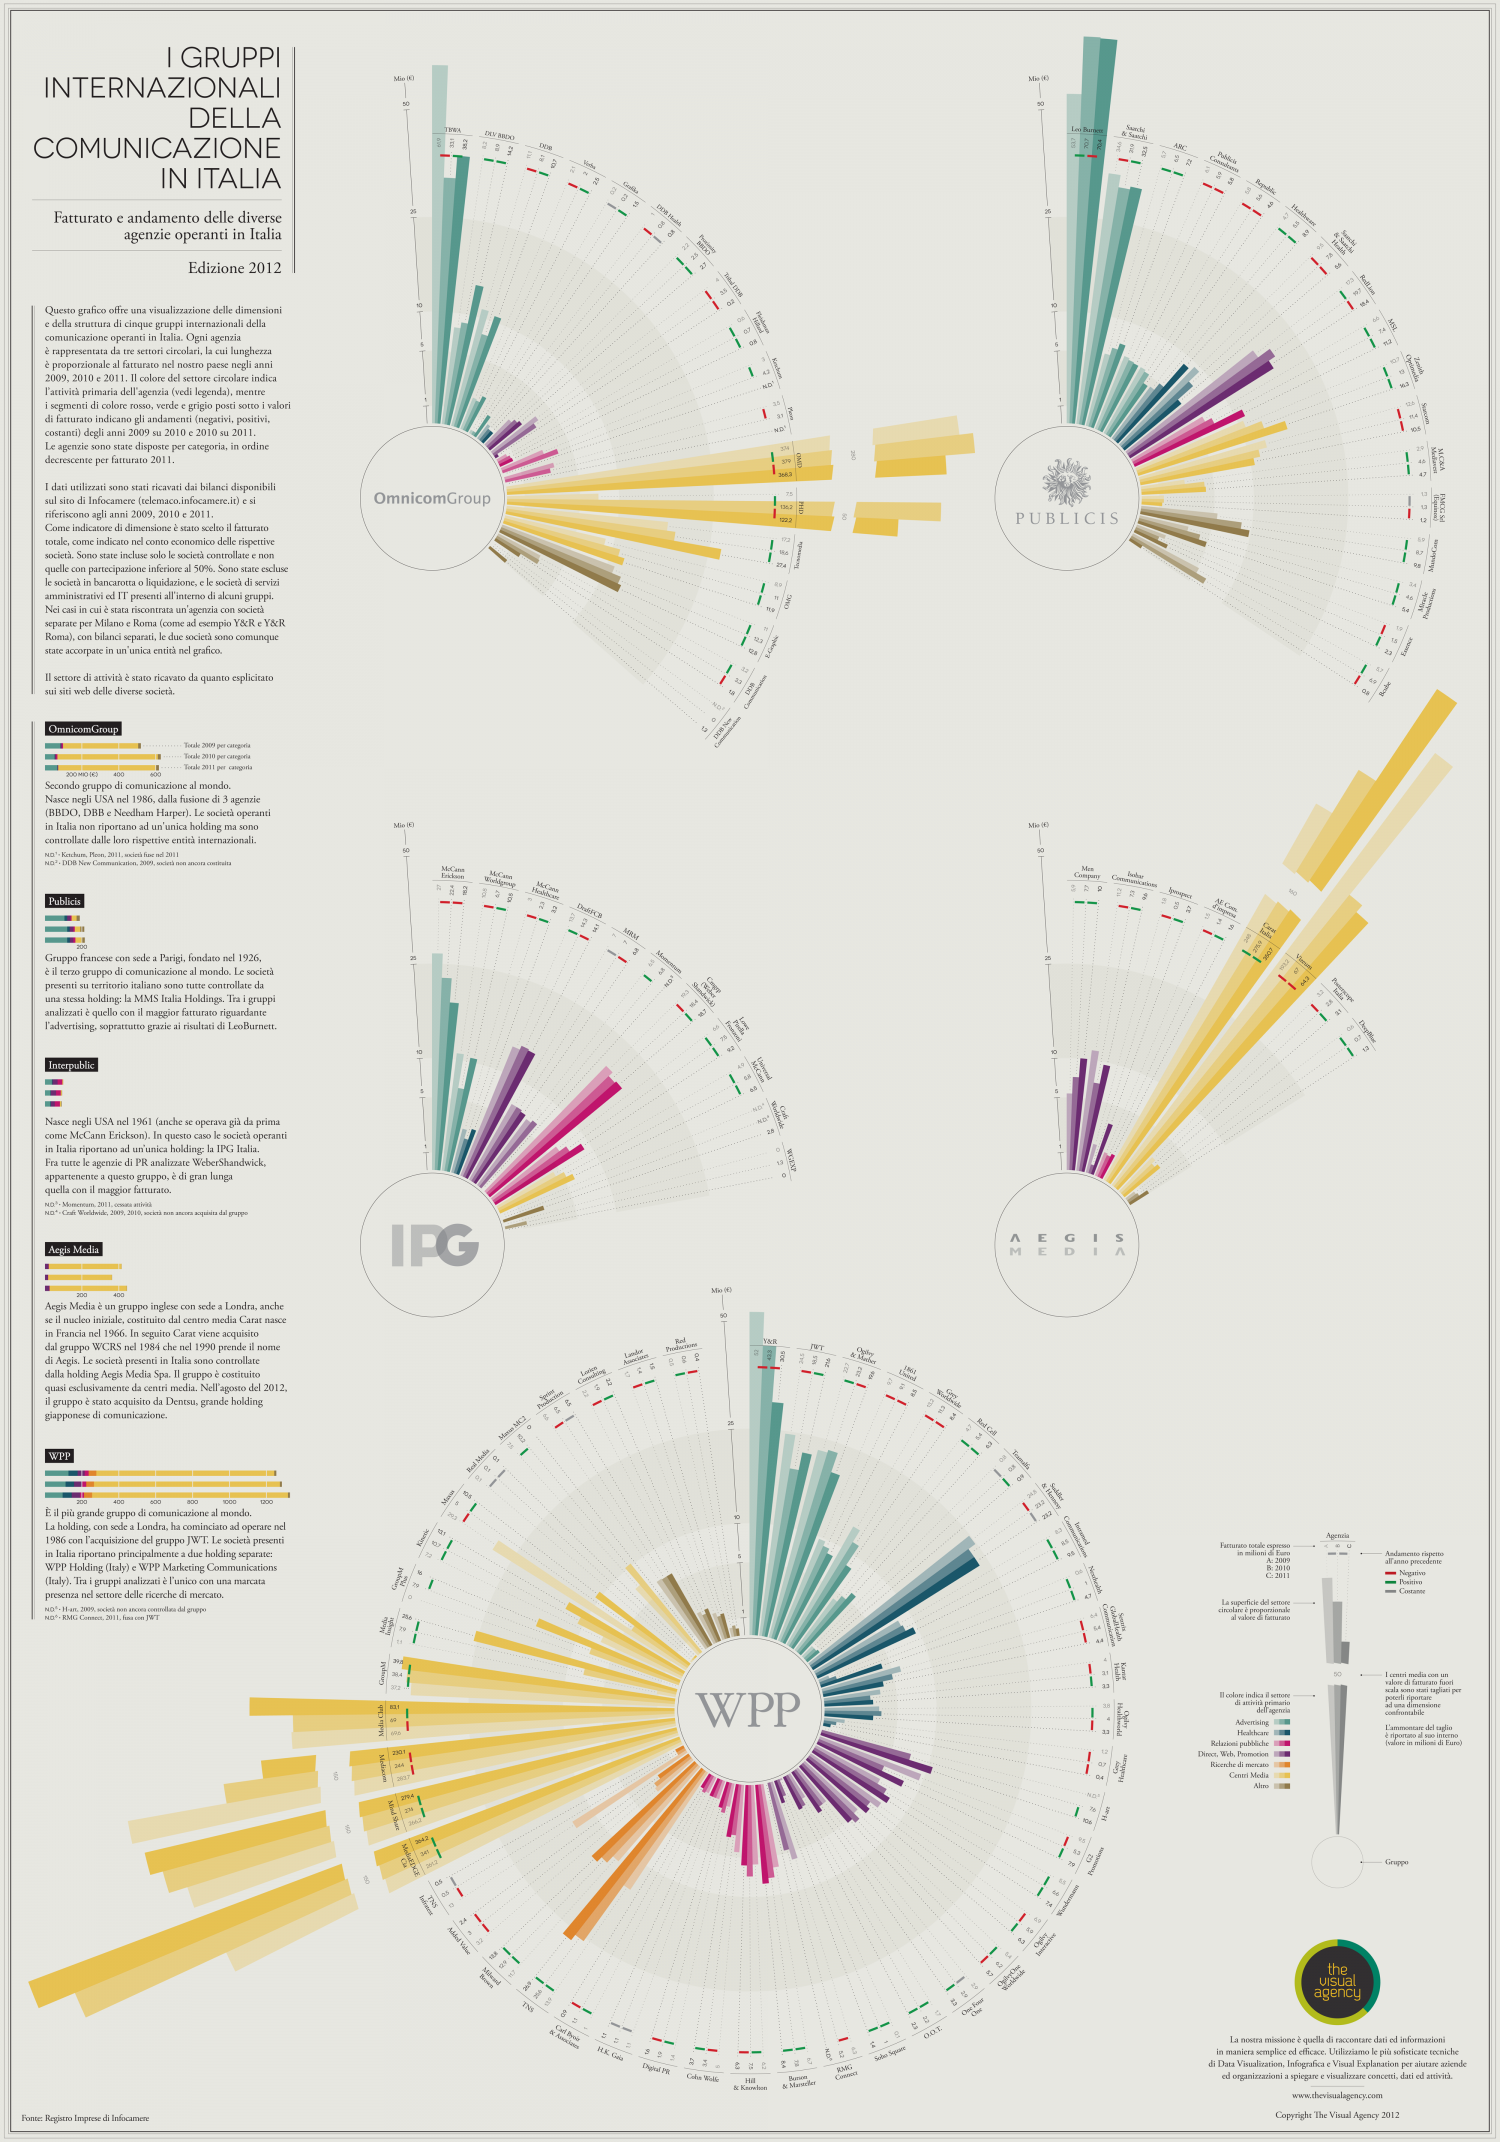 International communications group in Italy – 2012 Infographic